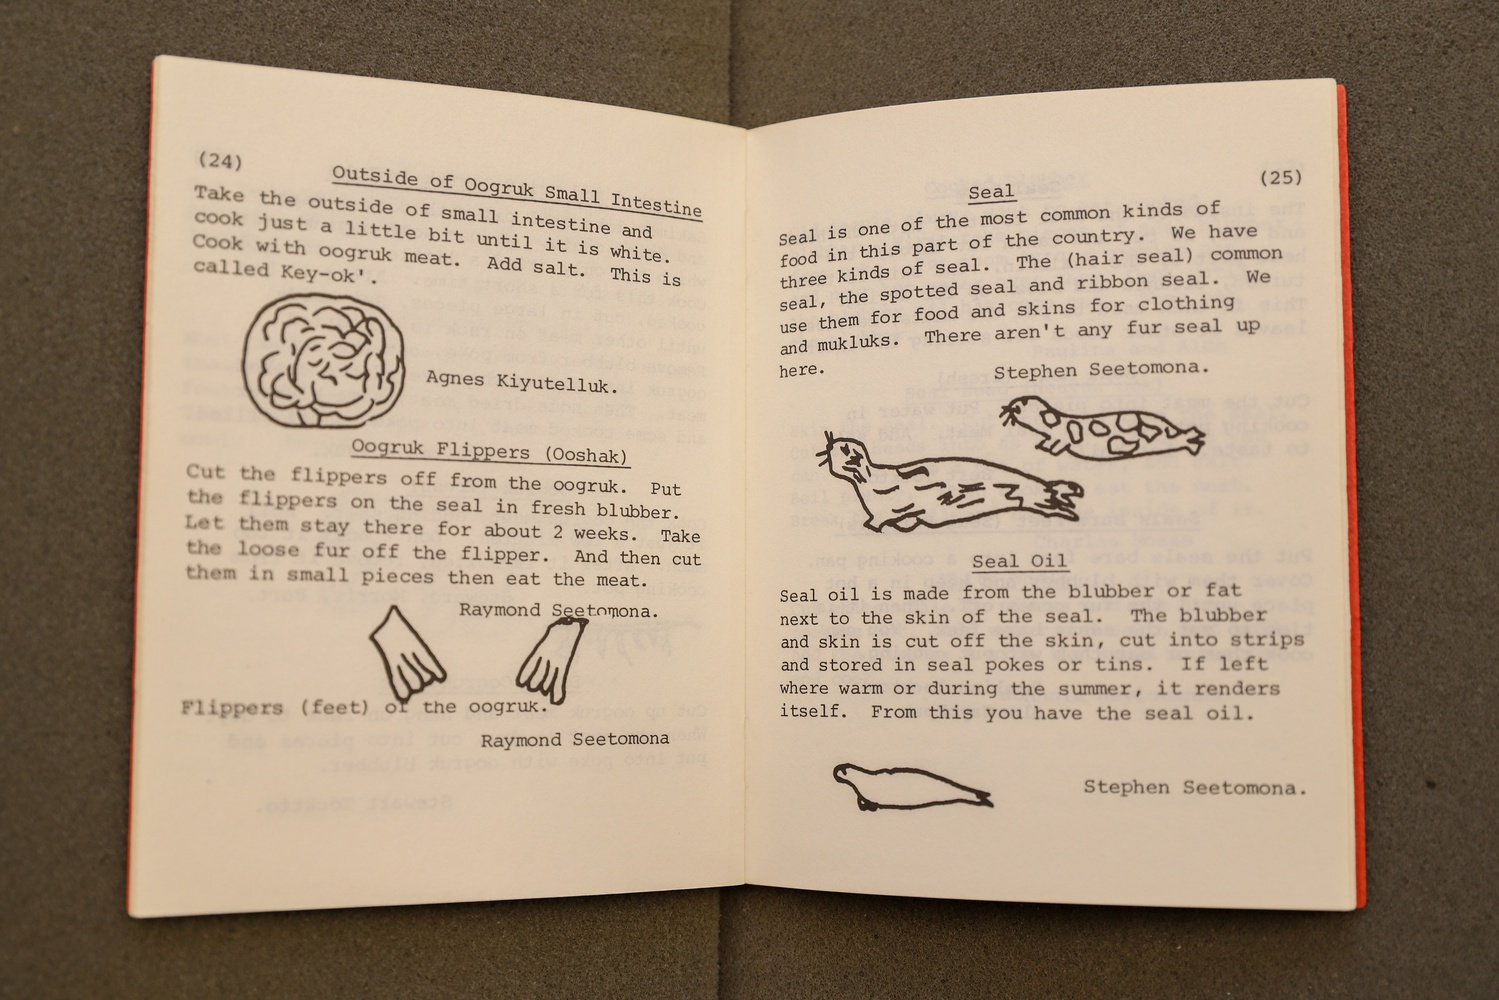 The Eskimo Cookbook was created by Inupiat of the Shishmaref Day School in Shismaref, Alaska. Students were tasked with bringing family recipes to school, where they produced this cookbook with hand-drawn images and attributions to specific students by name.